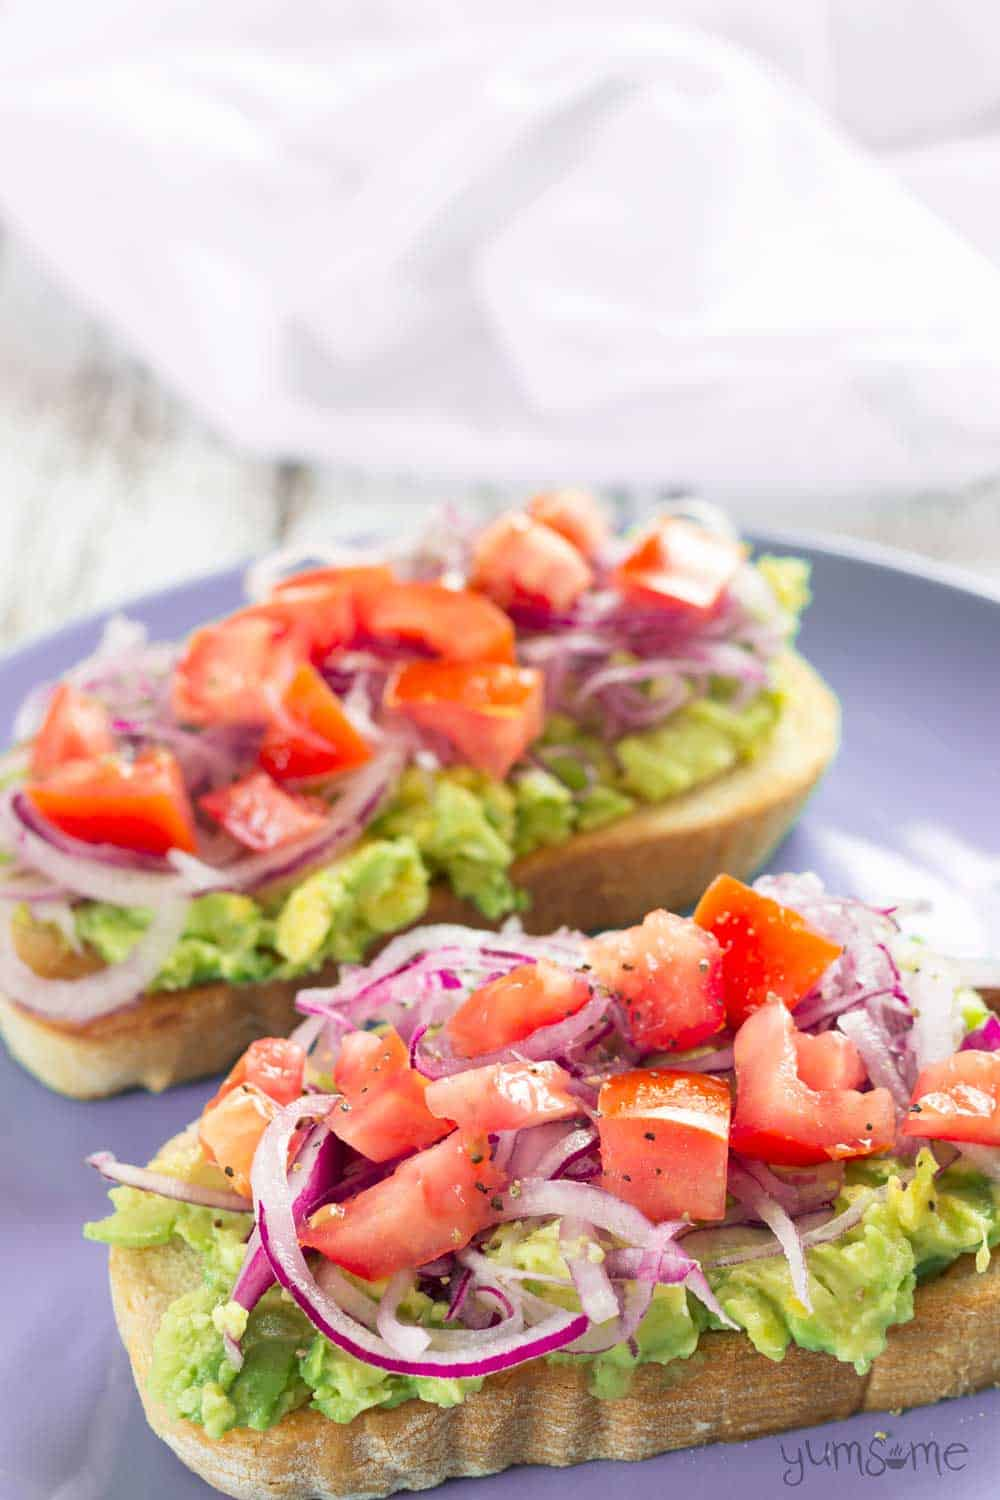 Easy Healthy Avocado Bruschetta from Yumsome